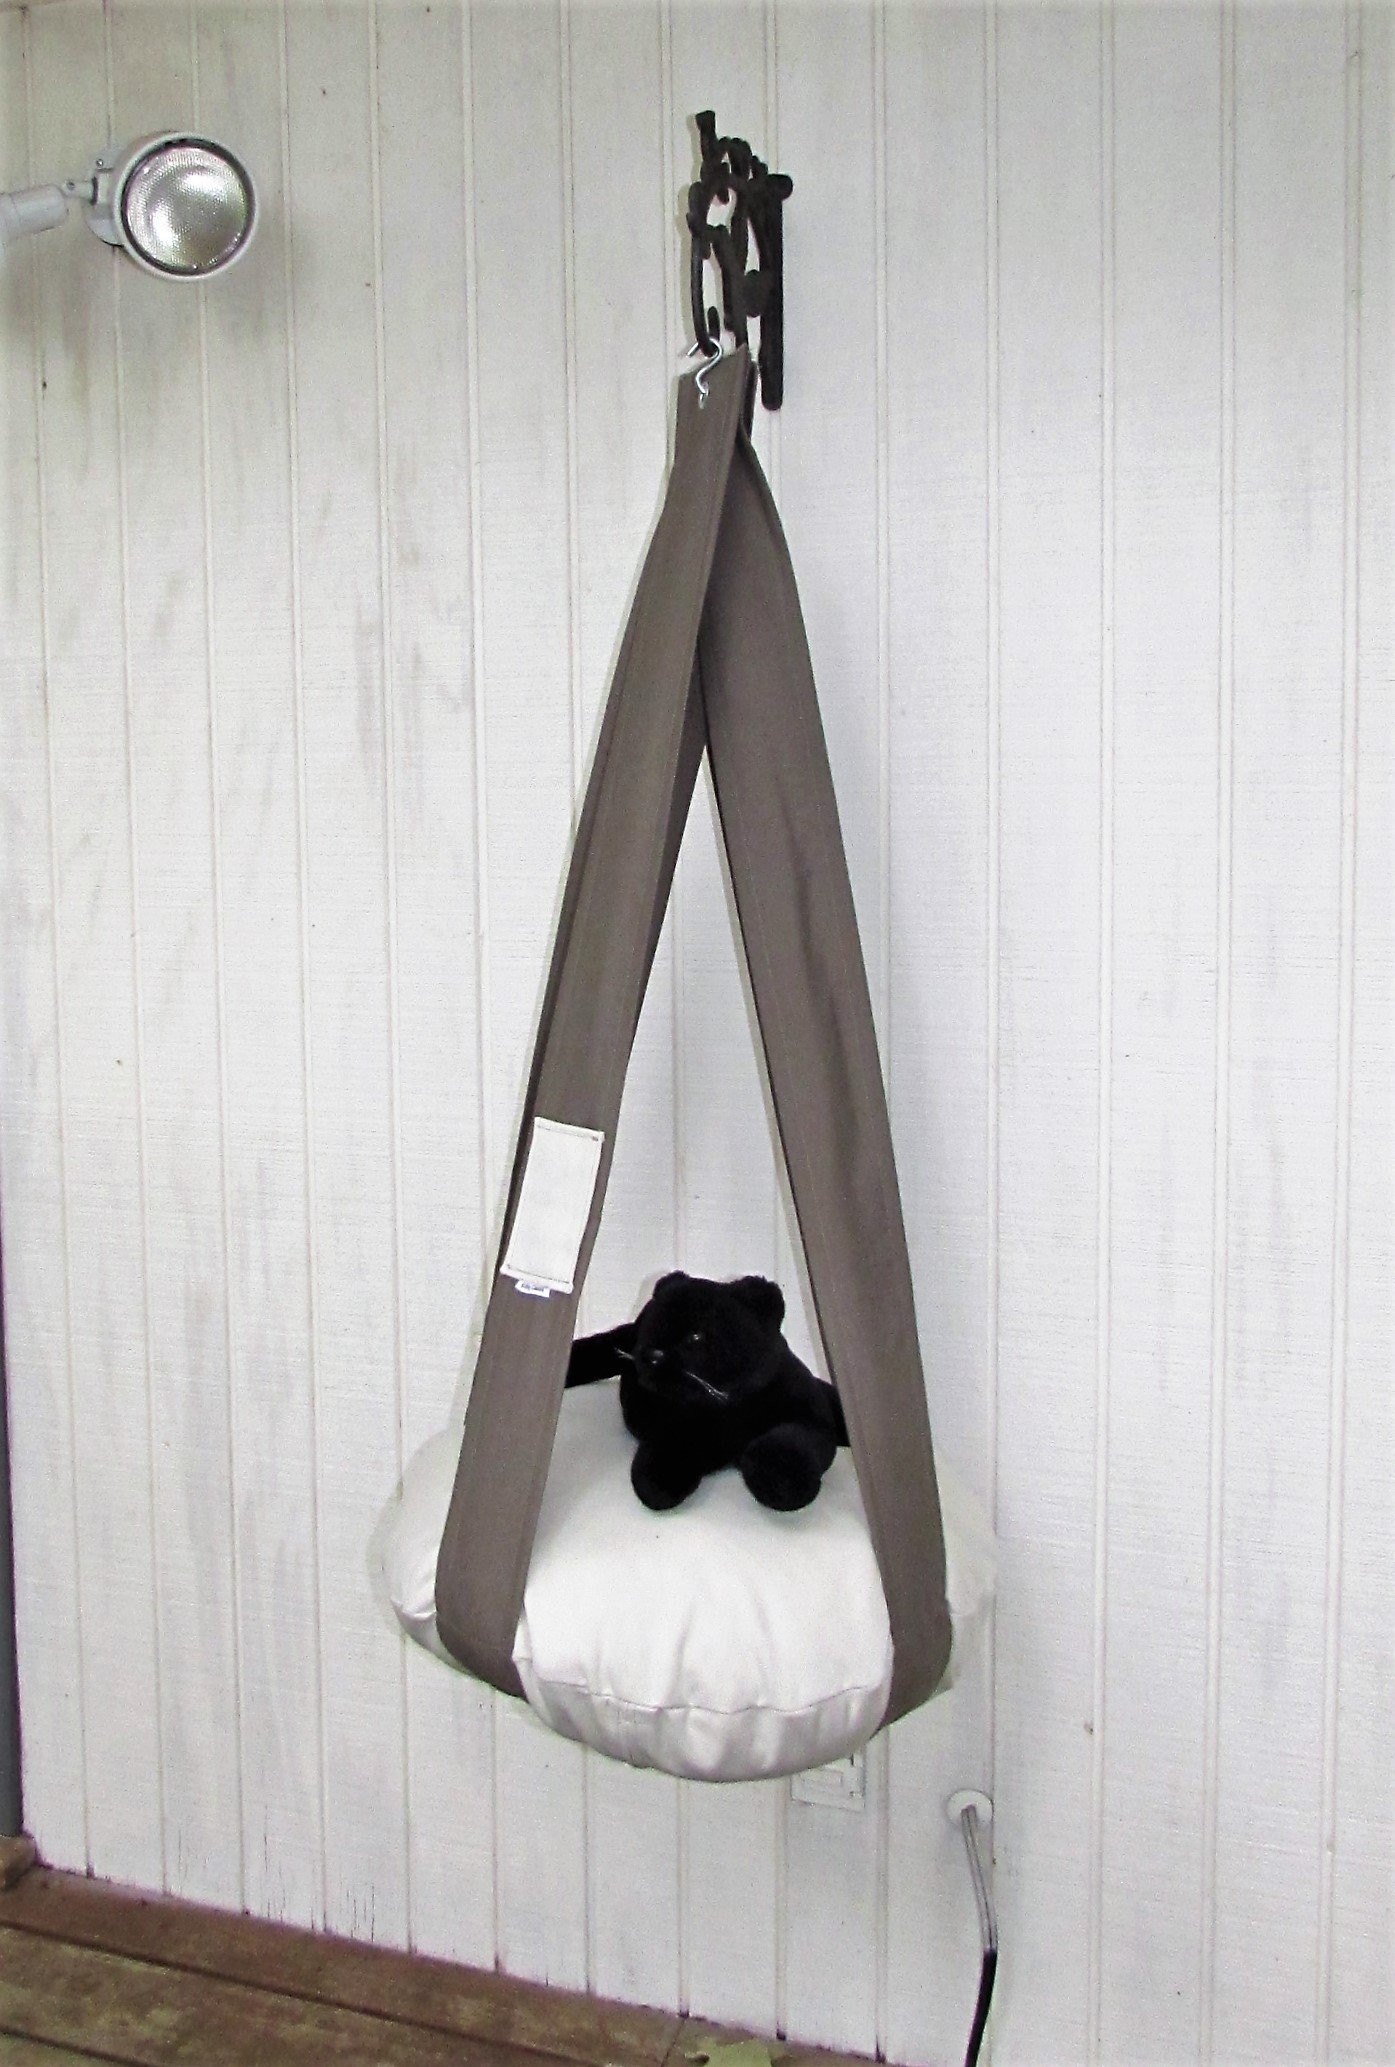 Cat Bed Neutral Khaki Green & Cream Single Cat Bed, Kitty Cloud, Hanging Cat Bed, Pet Furniture, Gift, Cat Tree